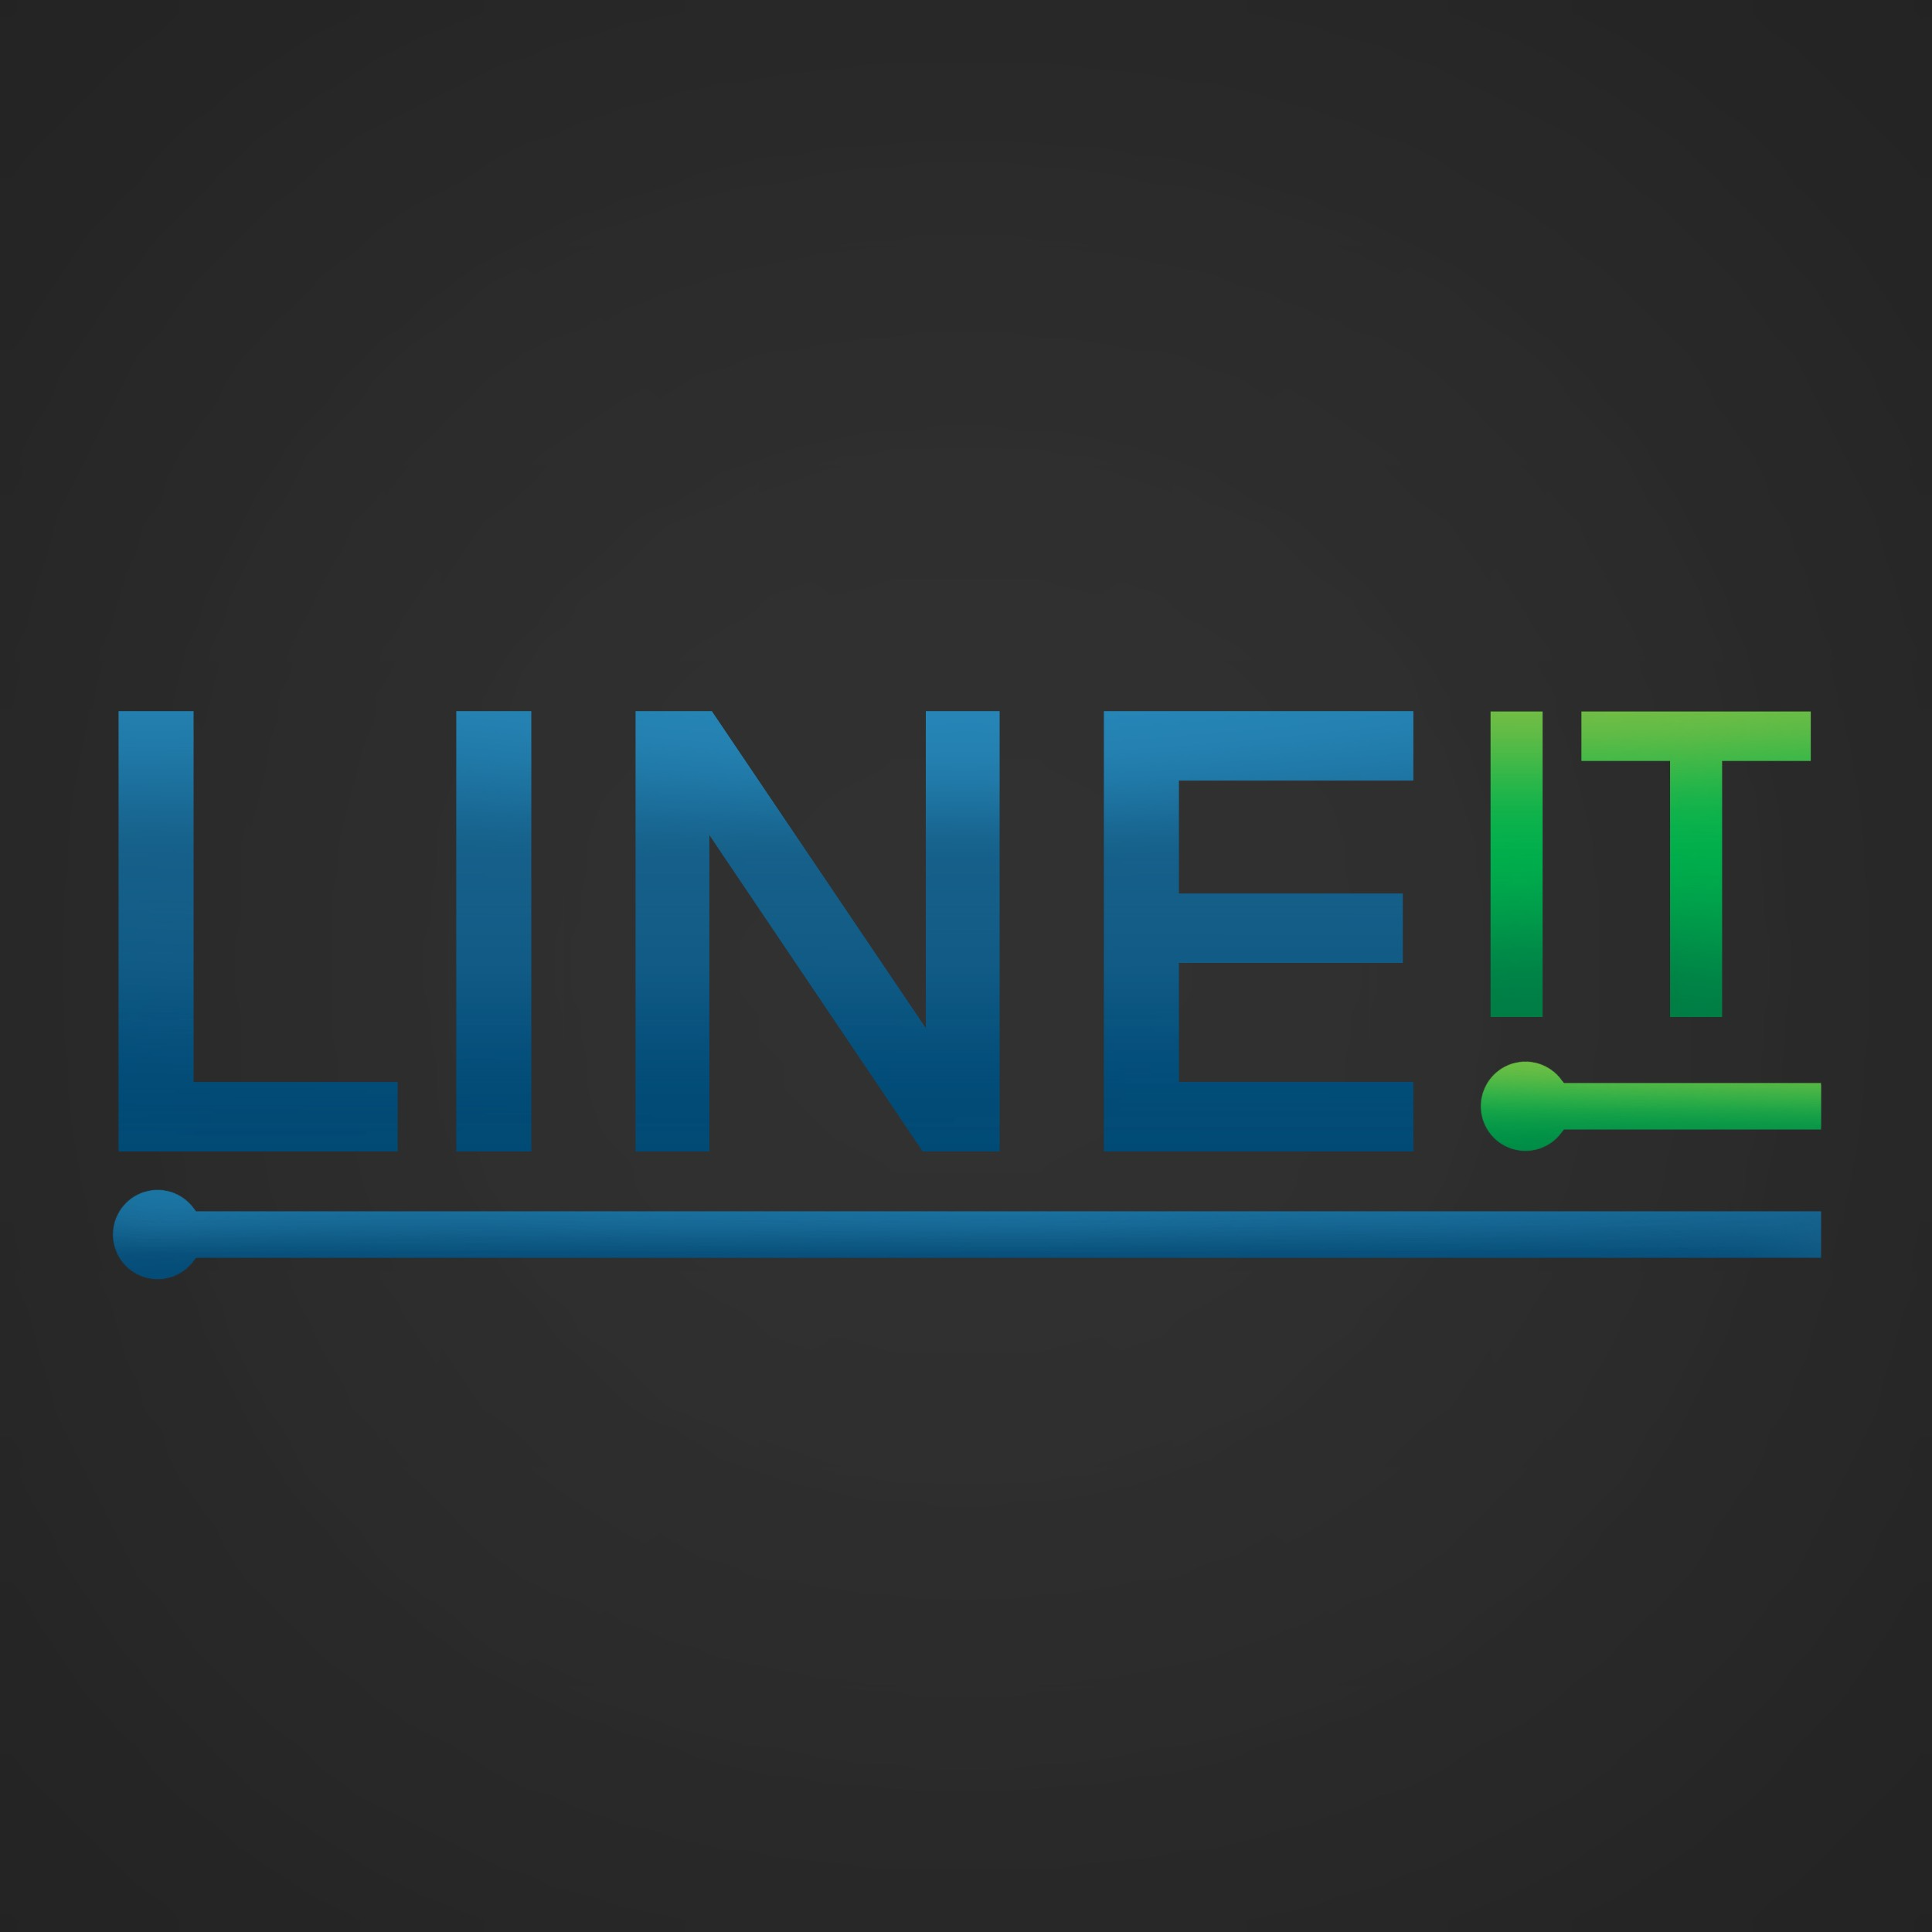 Urbanbyte Line It Logo blue green with words Line It and a prompt script line underneath words